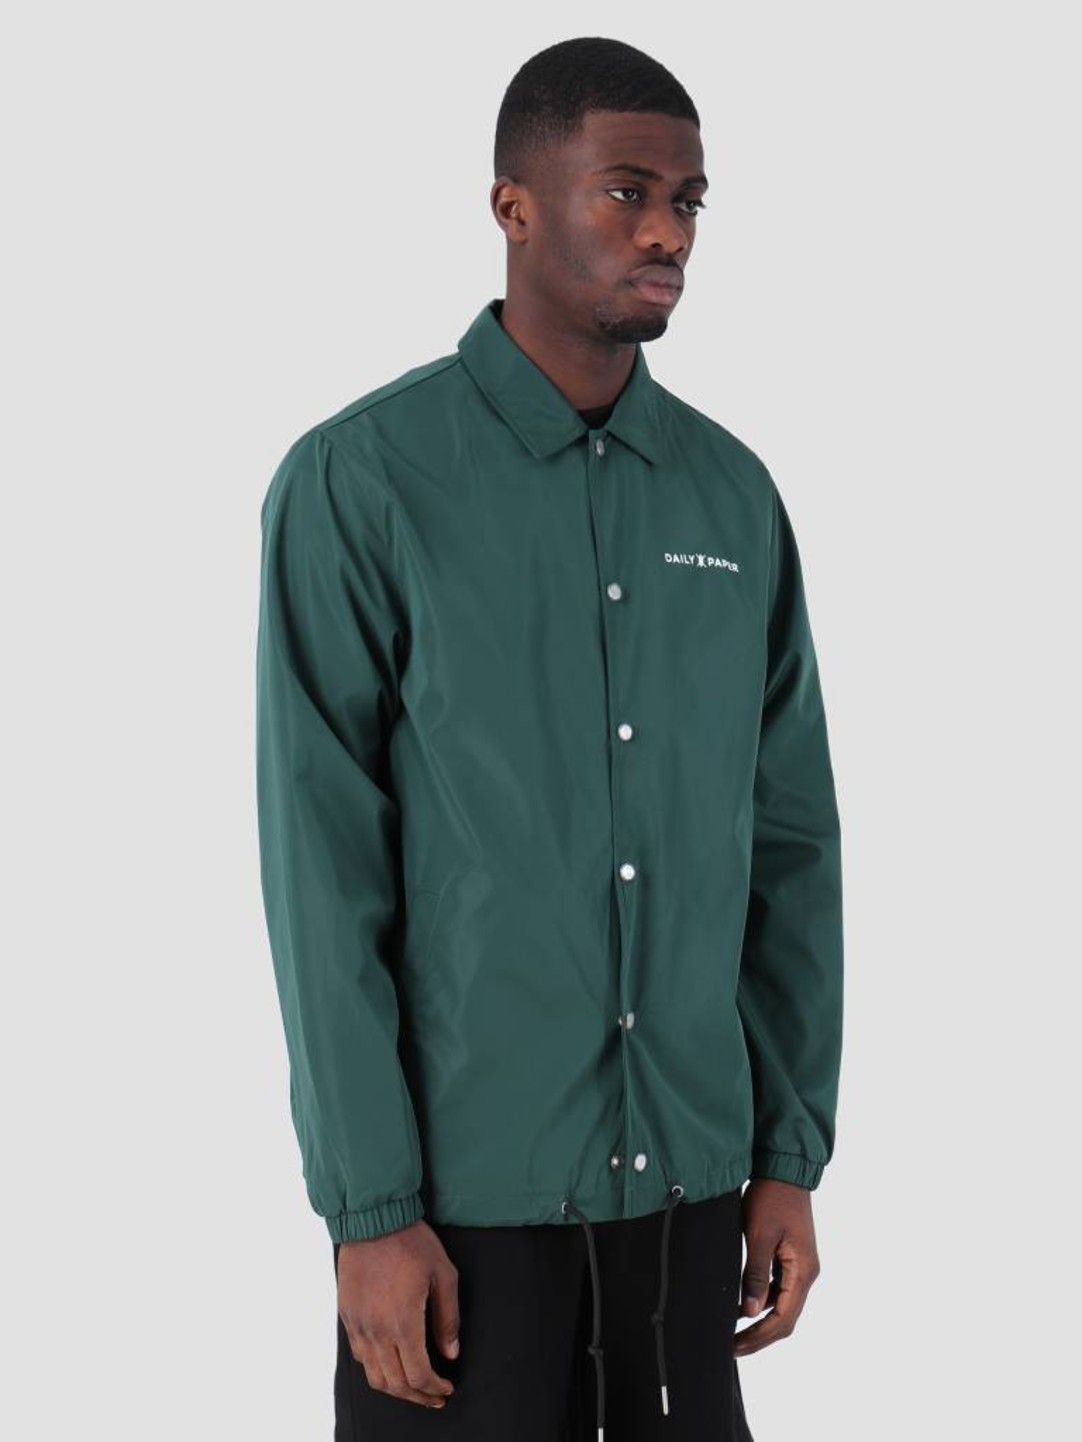 Daily Paper Daily Paper SS19 Essential Coach Jacket Dark Green 19S1OU22-04